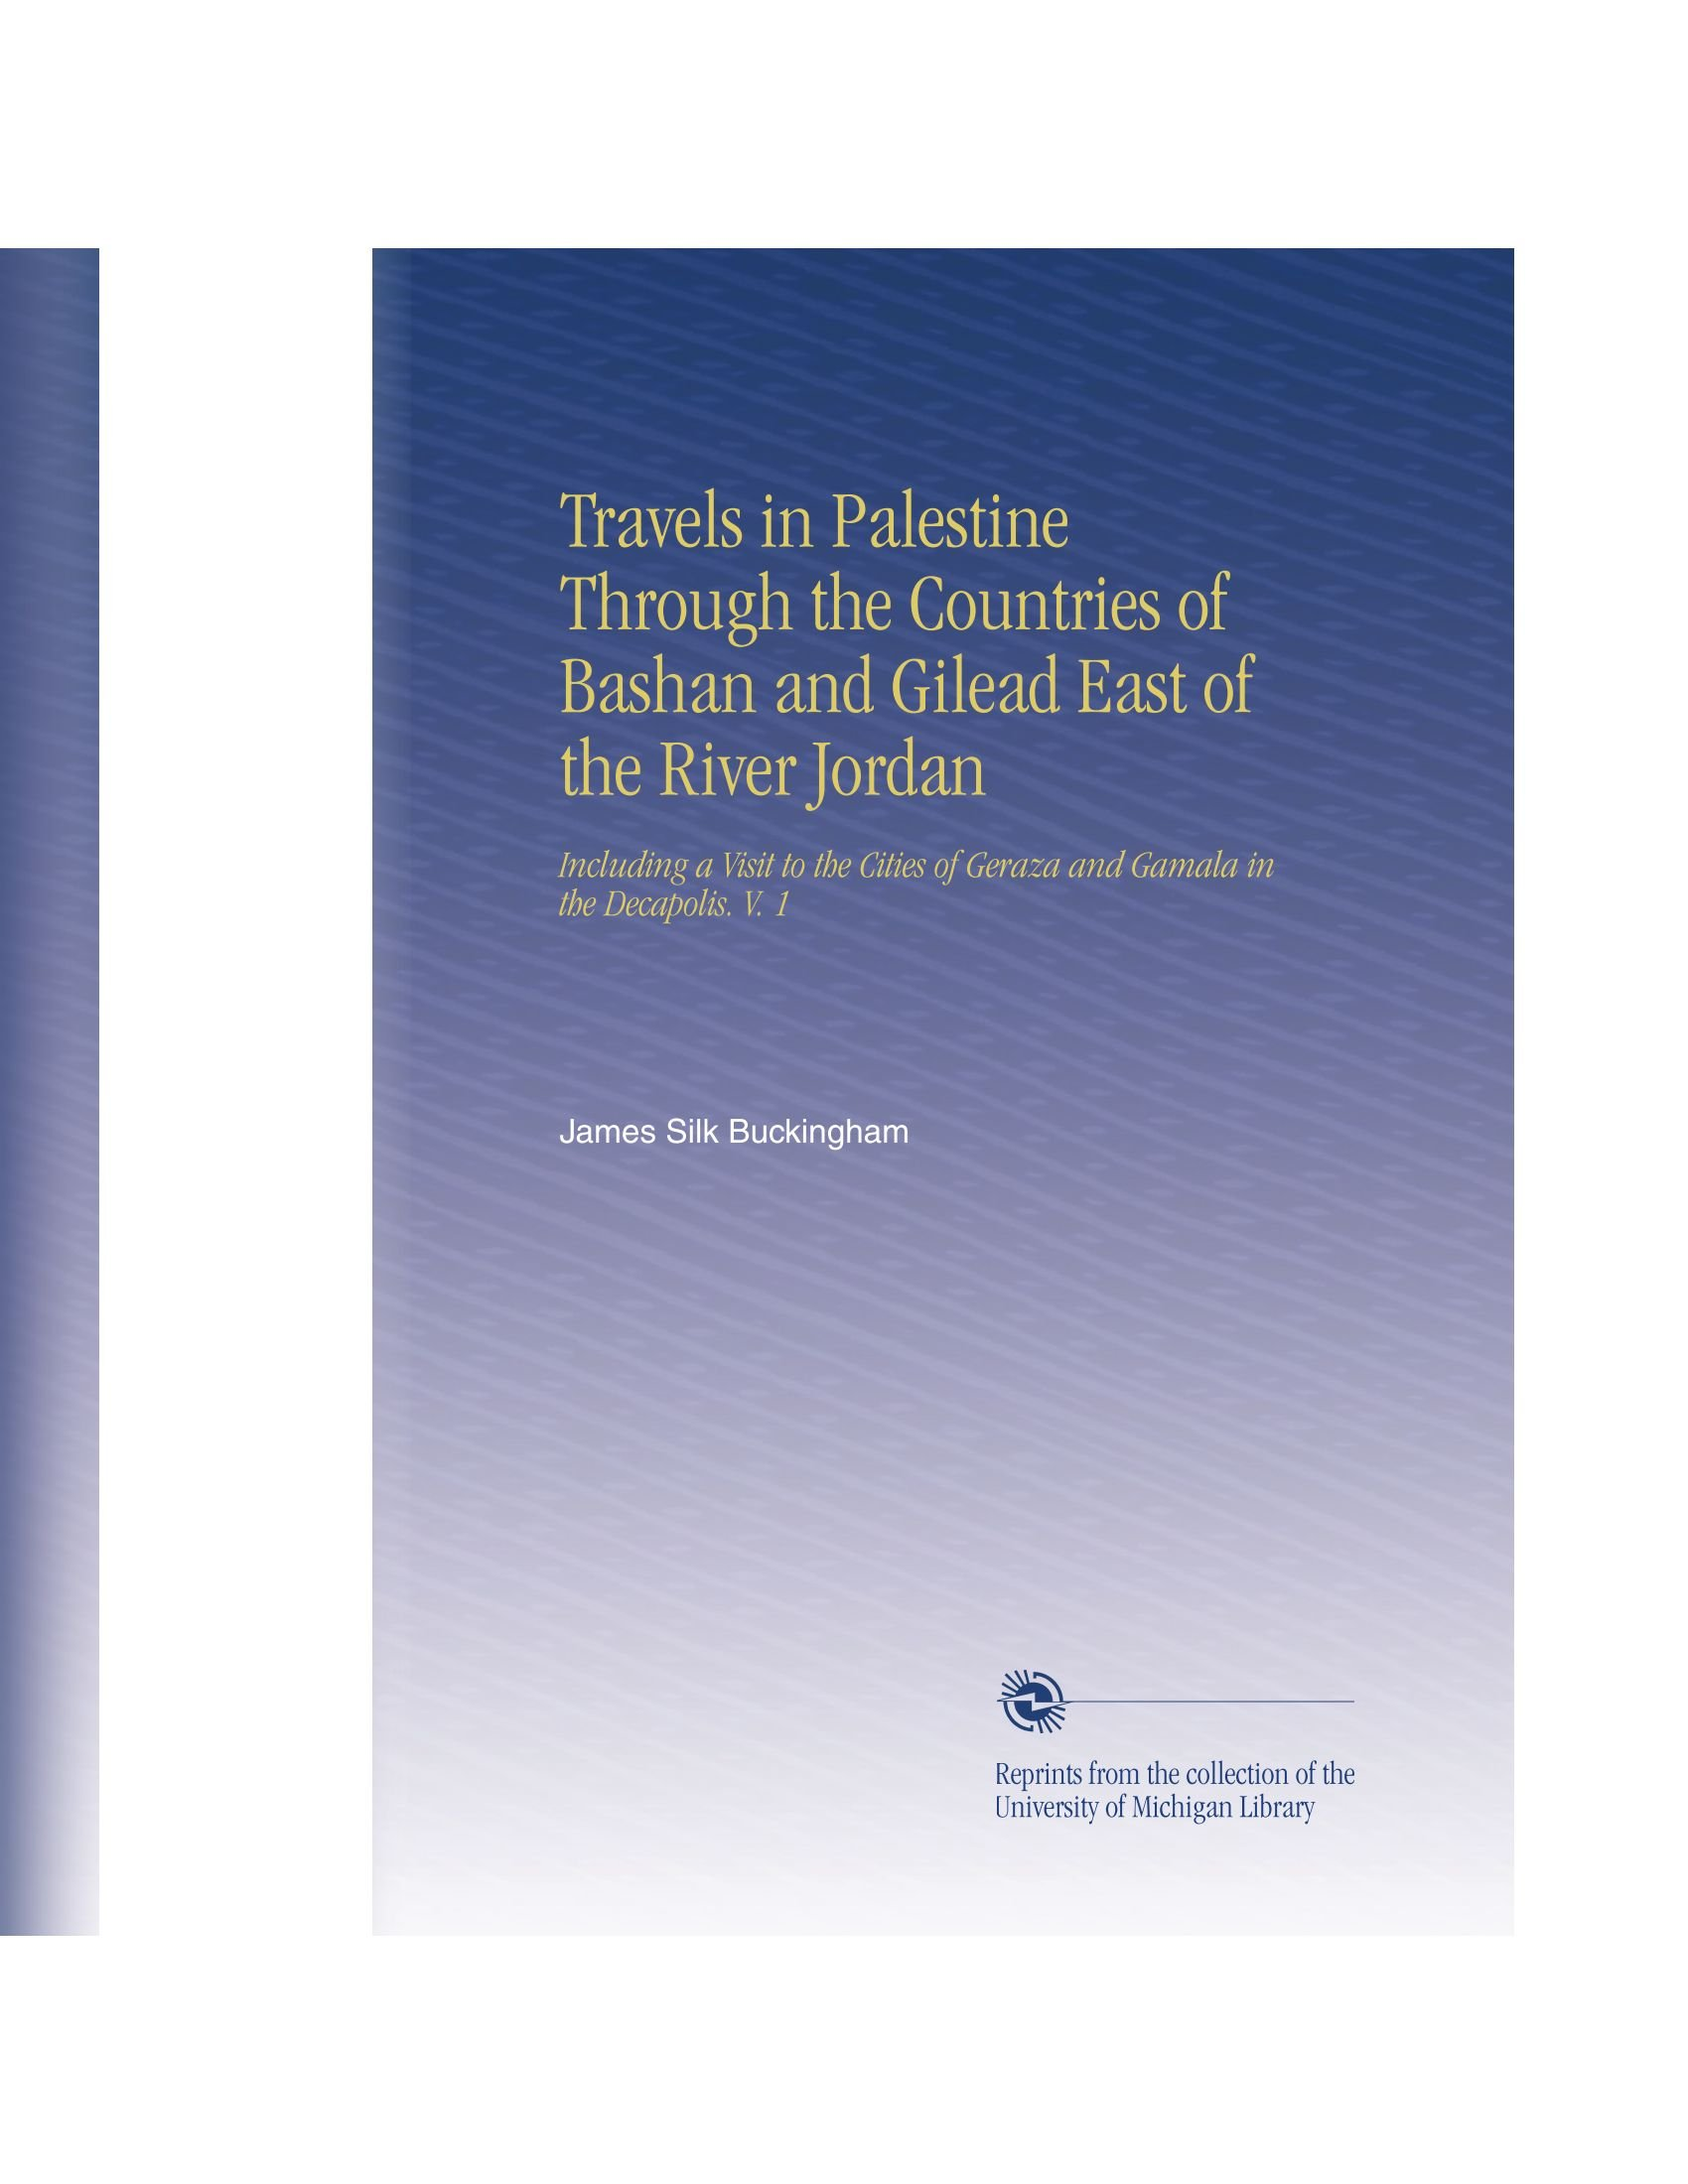 Travels in Palestine Through the Countries of Bashan and Gilead East of the River Jordan: Including a Visit to the Cities of Geraza and Gamala in the Decapolis. V. 1